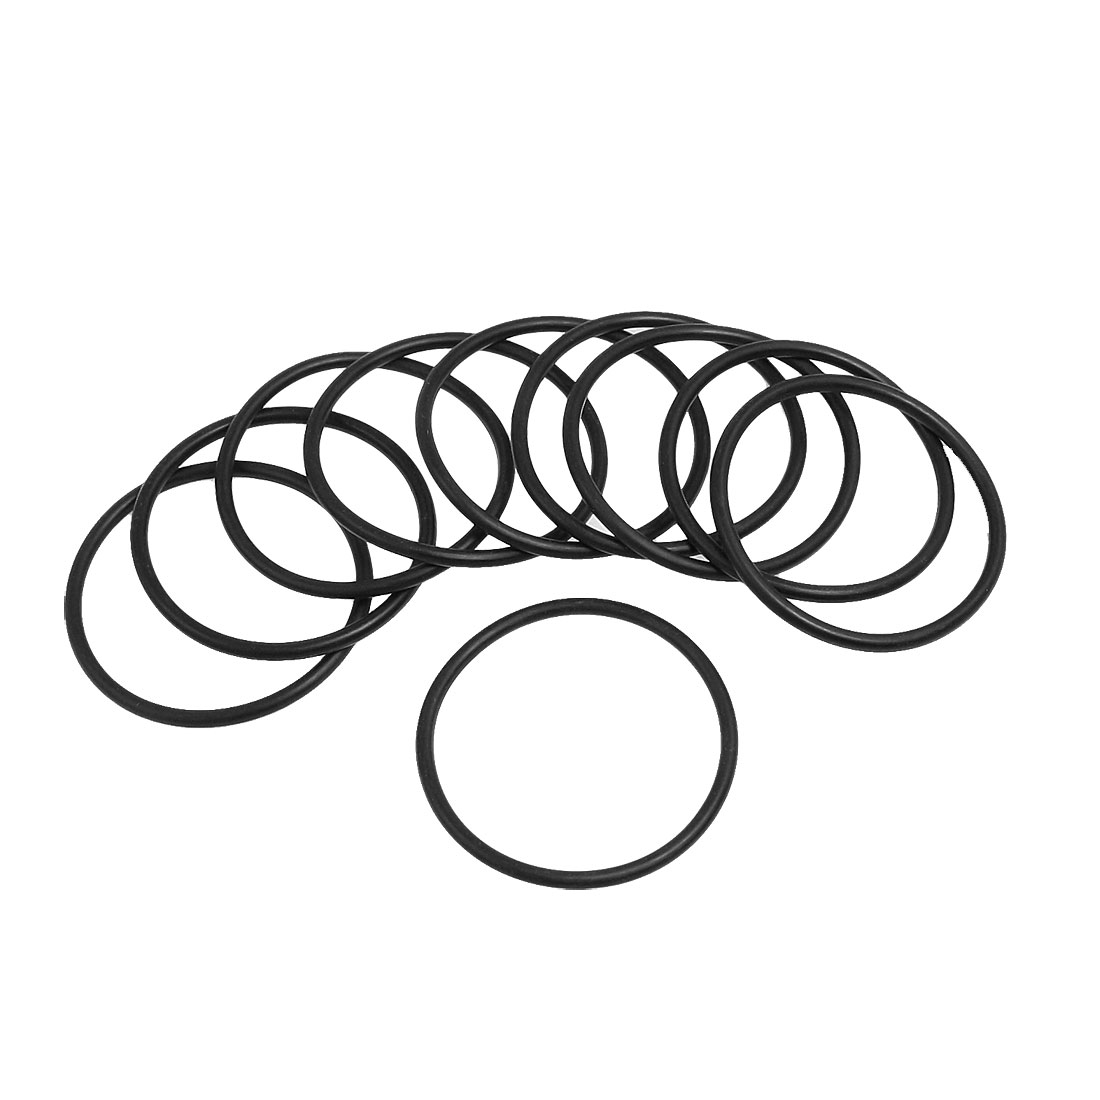 10 Pcs 52mm x 3.1mm Black Silicone O Rings Oil Seals Gaskets